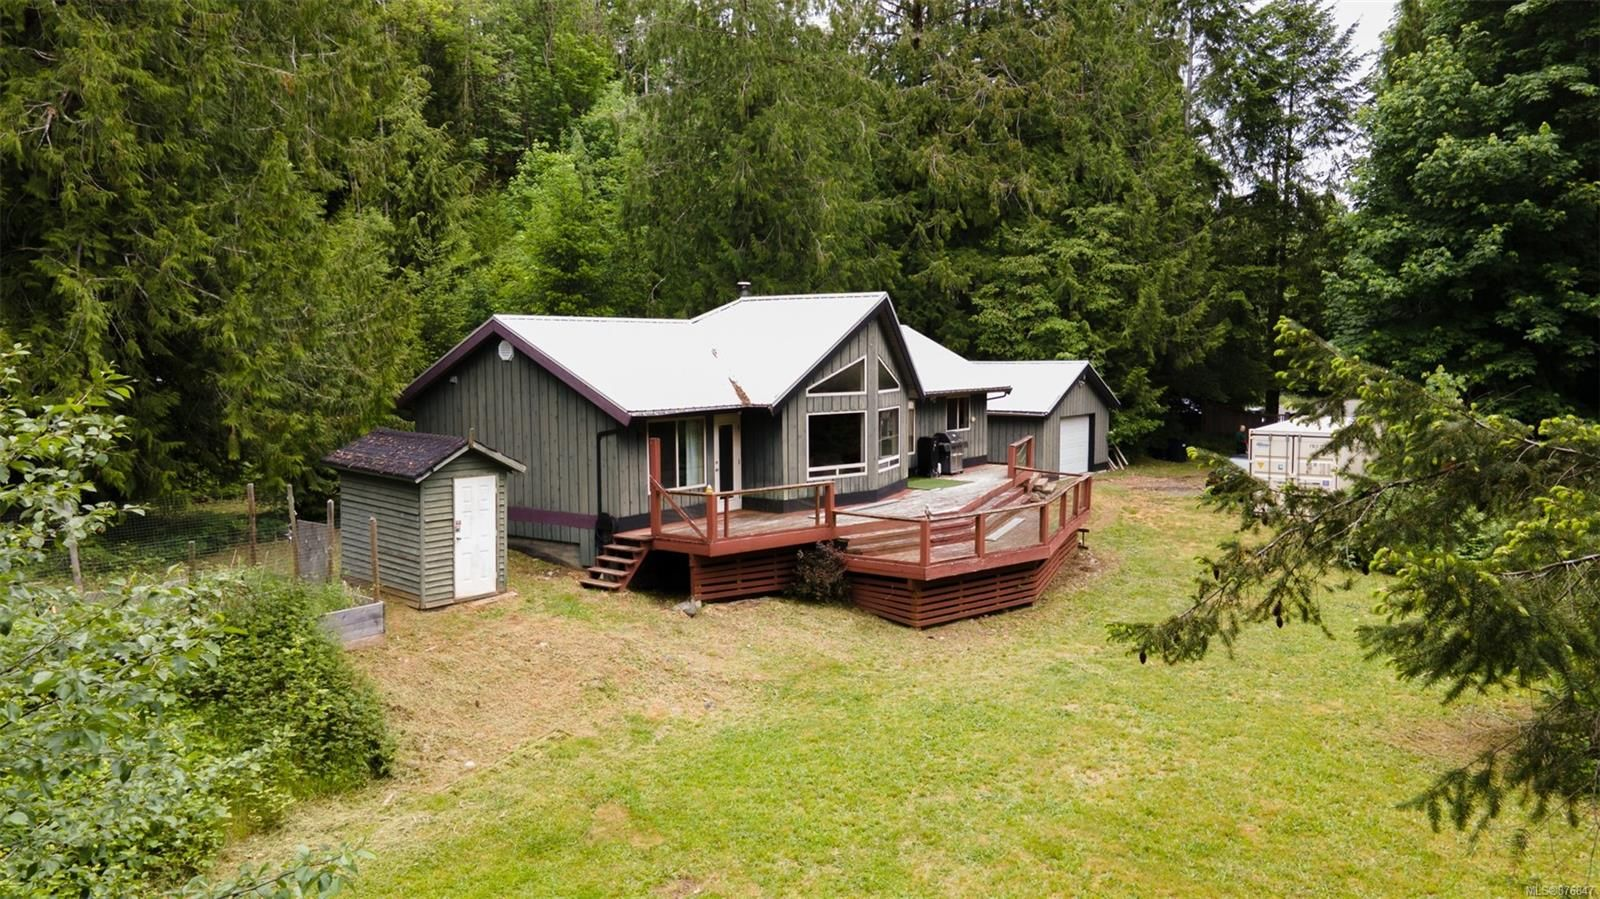 Main Photo: 4025 Winchester Rd in : Du West Duncan House for sale (Duncan)  : MLS®# 876847